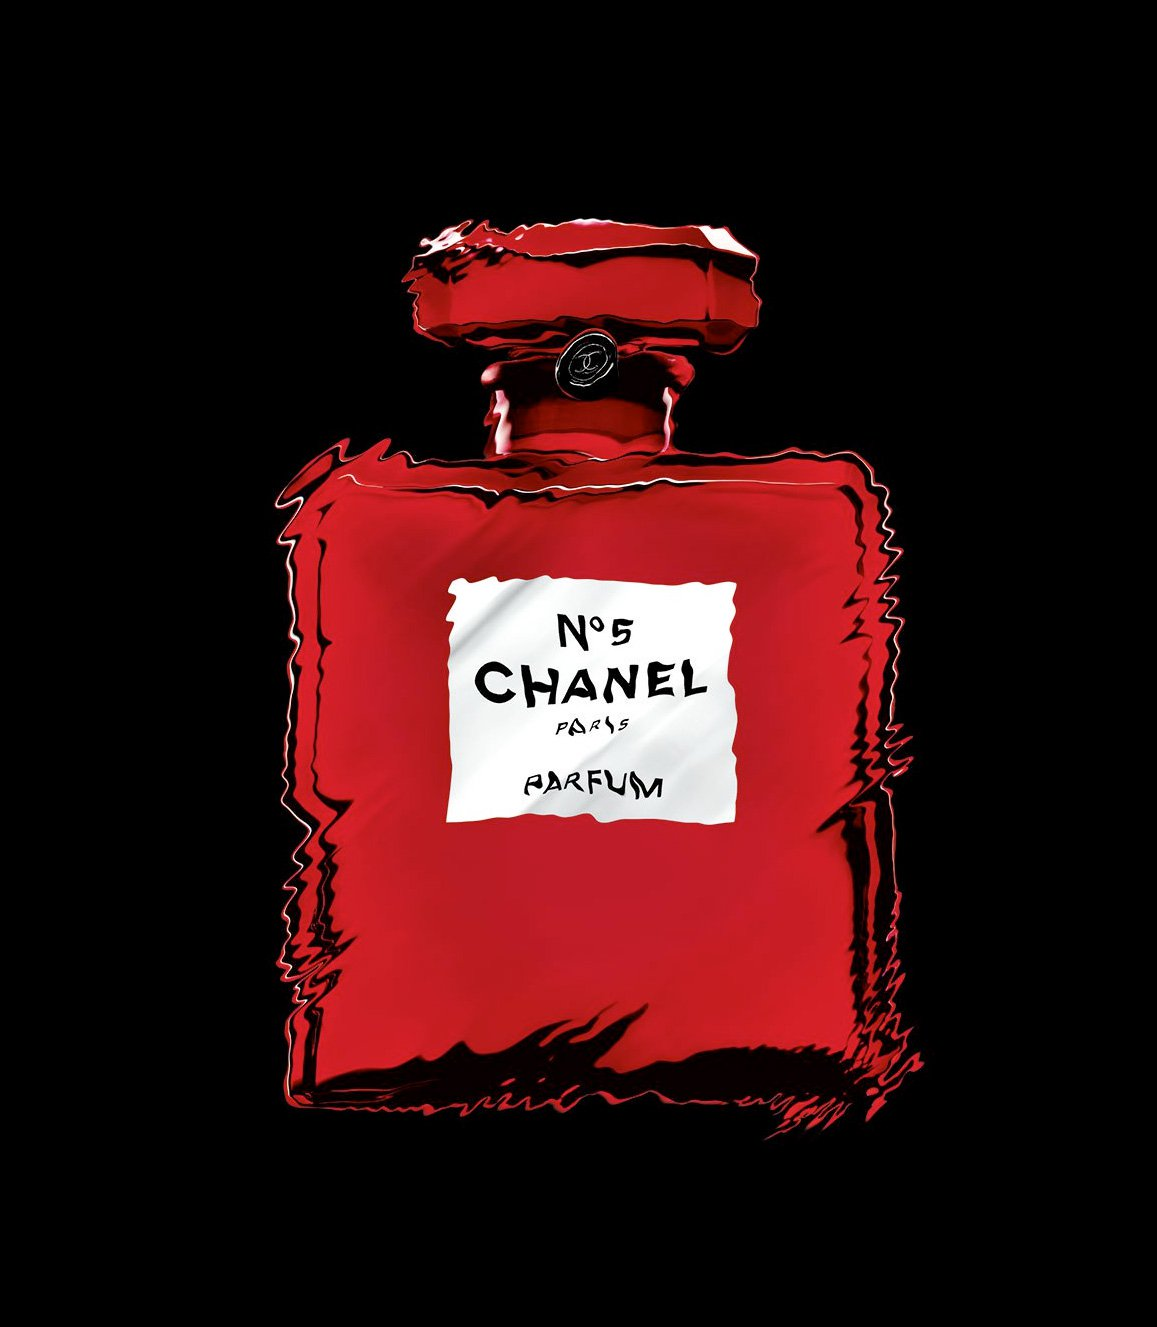 chanel-no-5-red-editions-perfume-49-1536658990